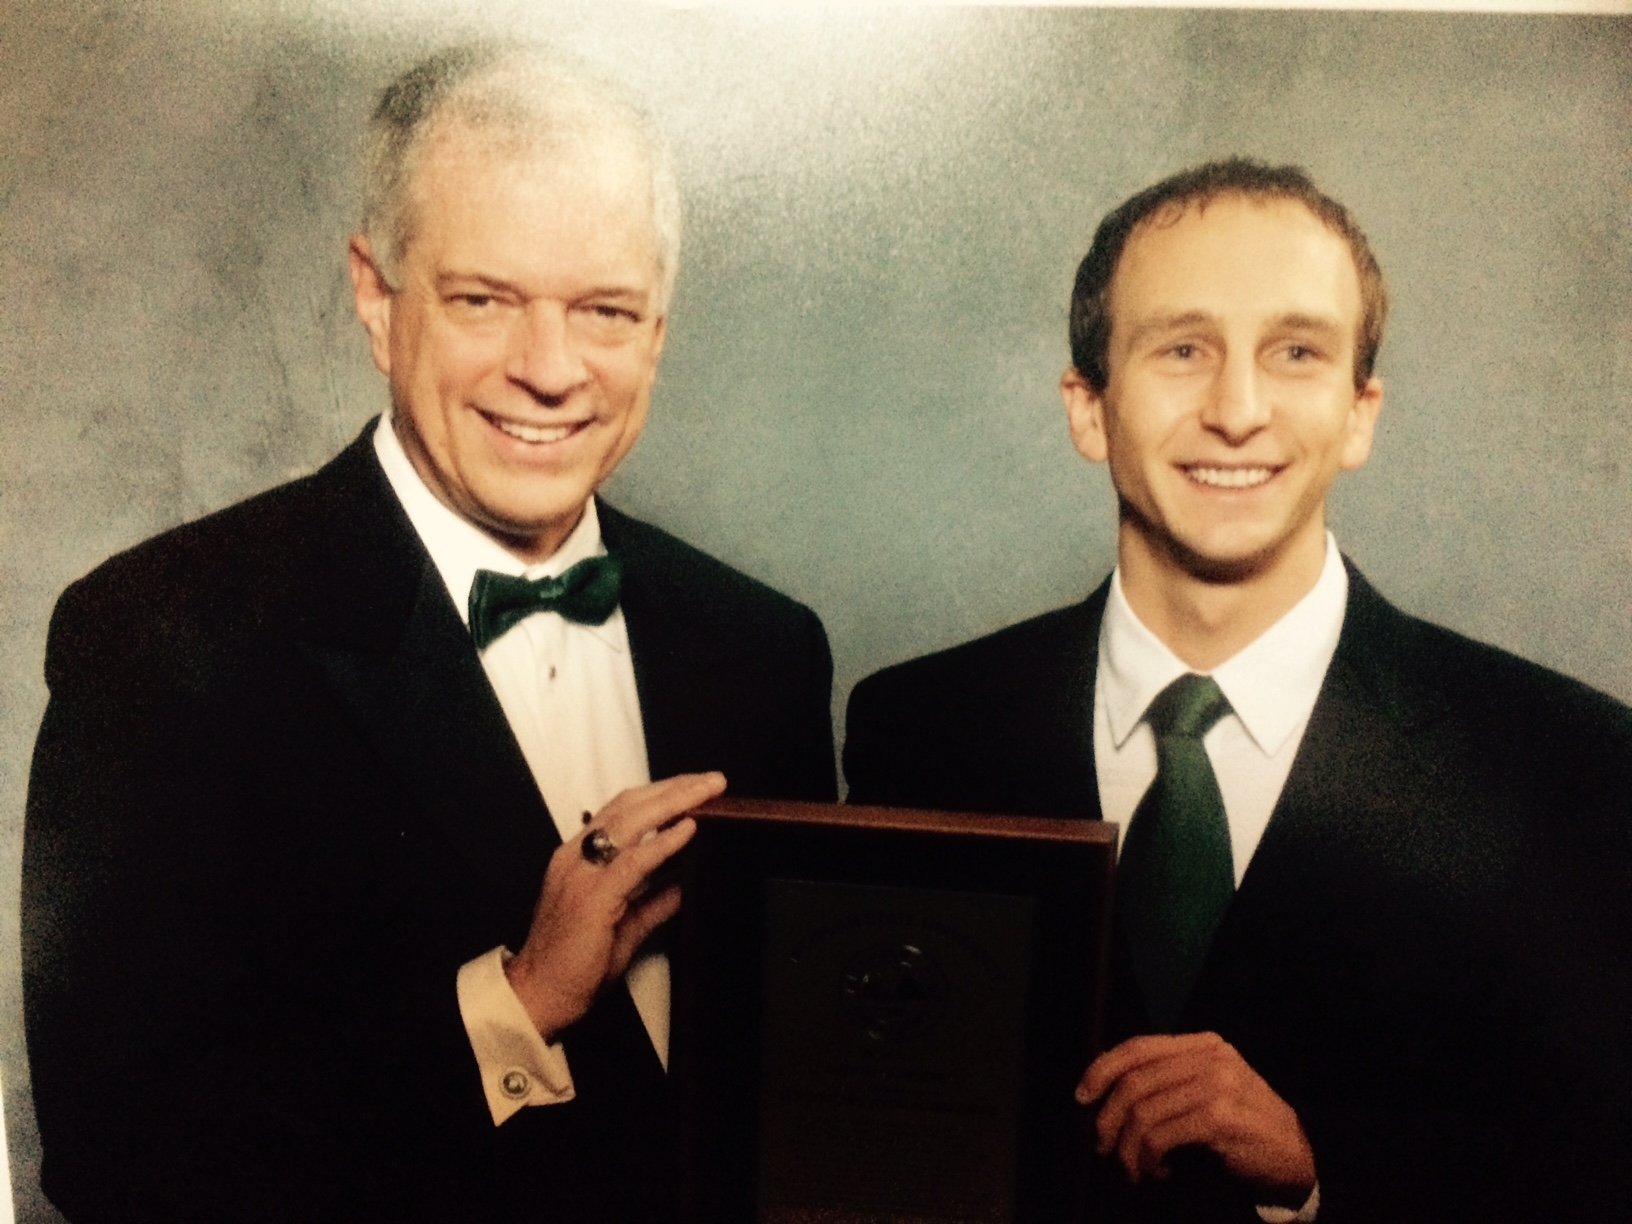 """Everyone that knows me knows that every day I wake up and tell myself """"Its a Great day to be a Spartan""""  Well in 2010 I was so honored to be chosen as the Distinguished Young Alumni at the Grand Awards Ceremony during Homecoming weekend. Here I am with MSU Alumni President Scott Westerman receiving the award. The Spartans won that weekend on a historic game winning Hale Mary that Keith Nichols reached across the goal line for the win!"""